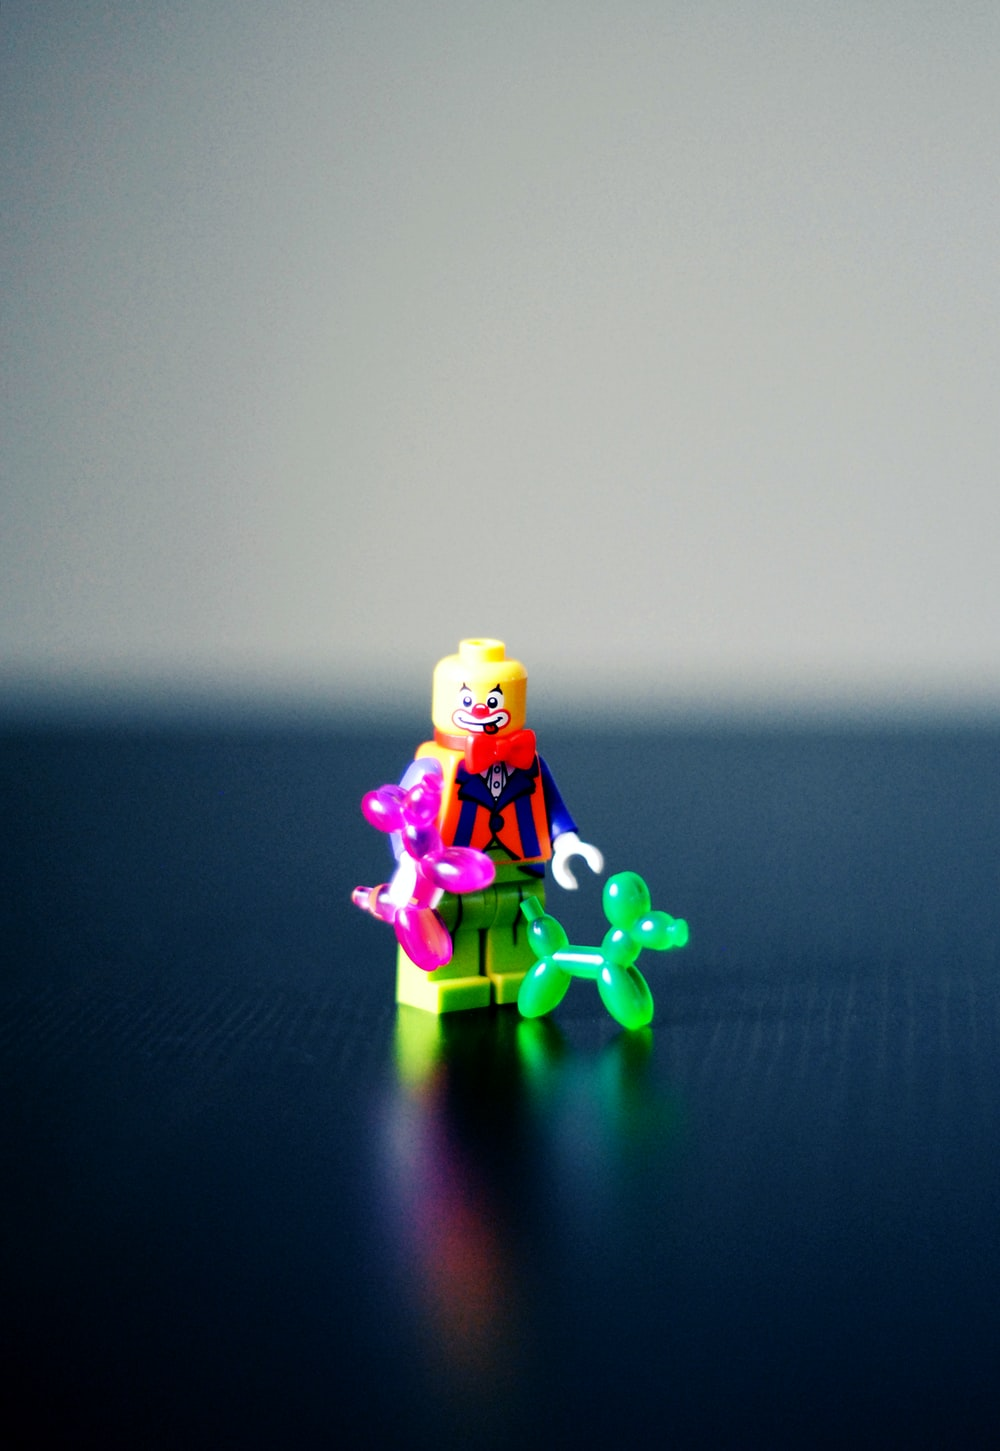 selective photography of Clown minifig toy